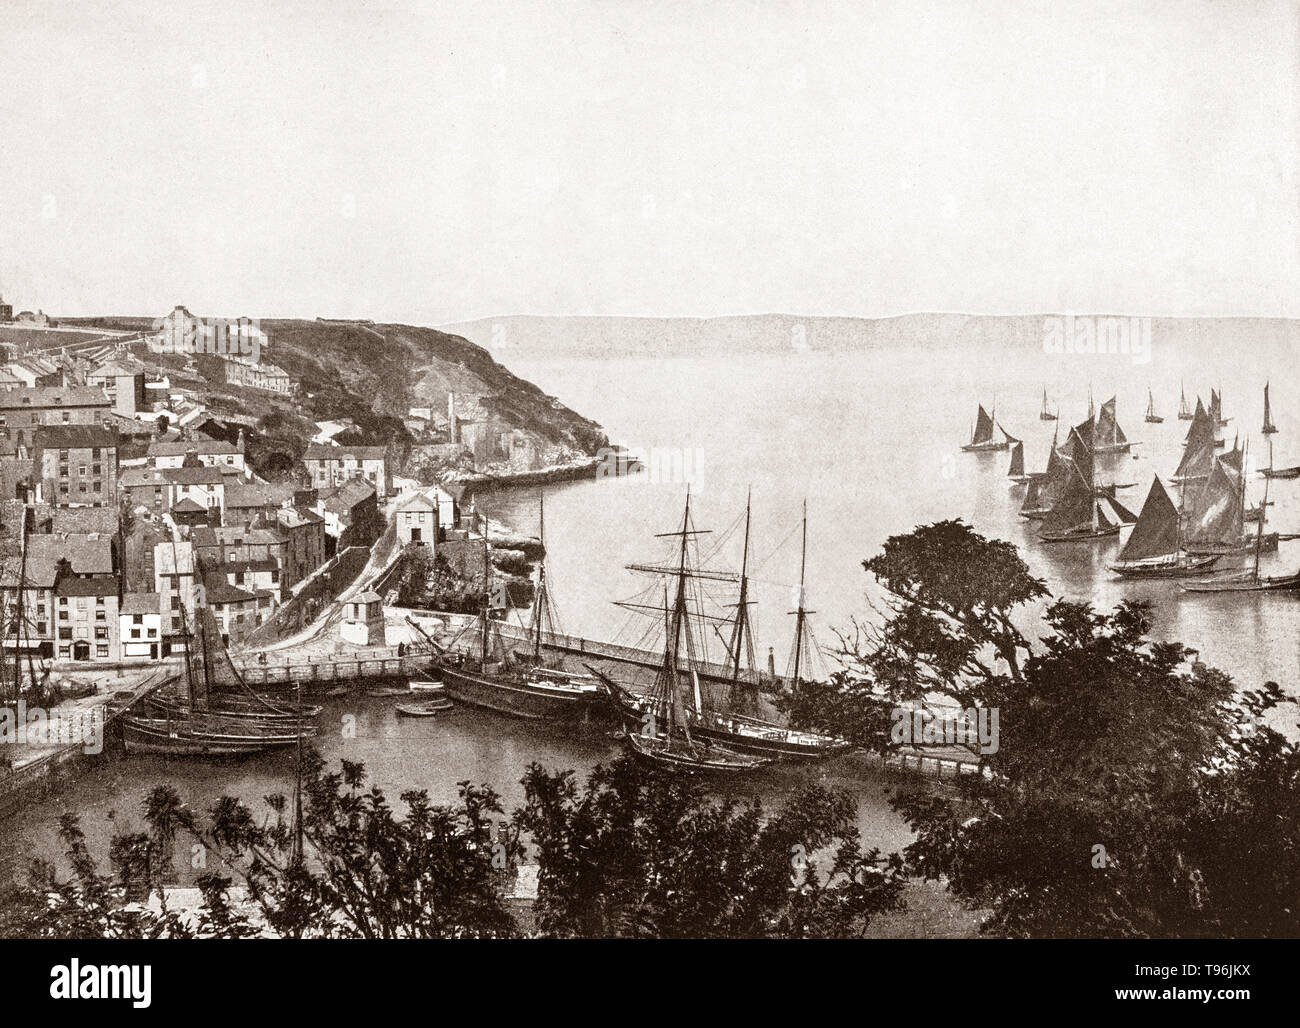 A late 19th Century view of shipping in the harbour in Brixham, a small fishing town in the district of Torbay in the county of Devon, in the south-west of England.  For many years Brixham was the largest fishing port in the south west of England and its boats helped to establish the fishing industries of Hull, Grimsby and Lowestoft. Some of the 300  individually owned trawling vessels from Brixham can be seen heading out to sea. - Stock Image